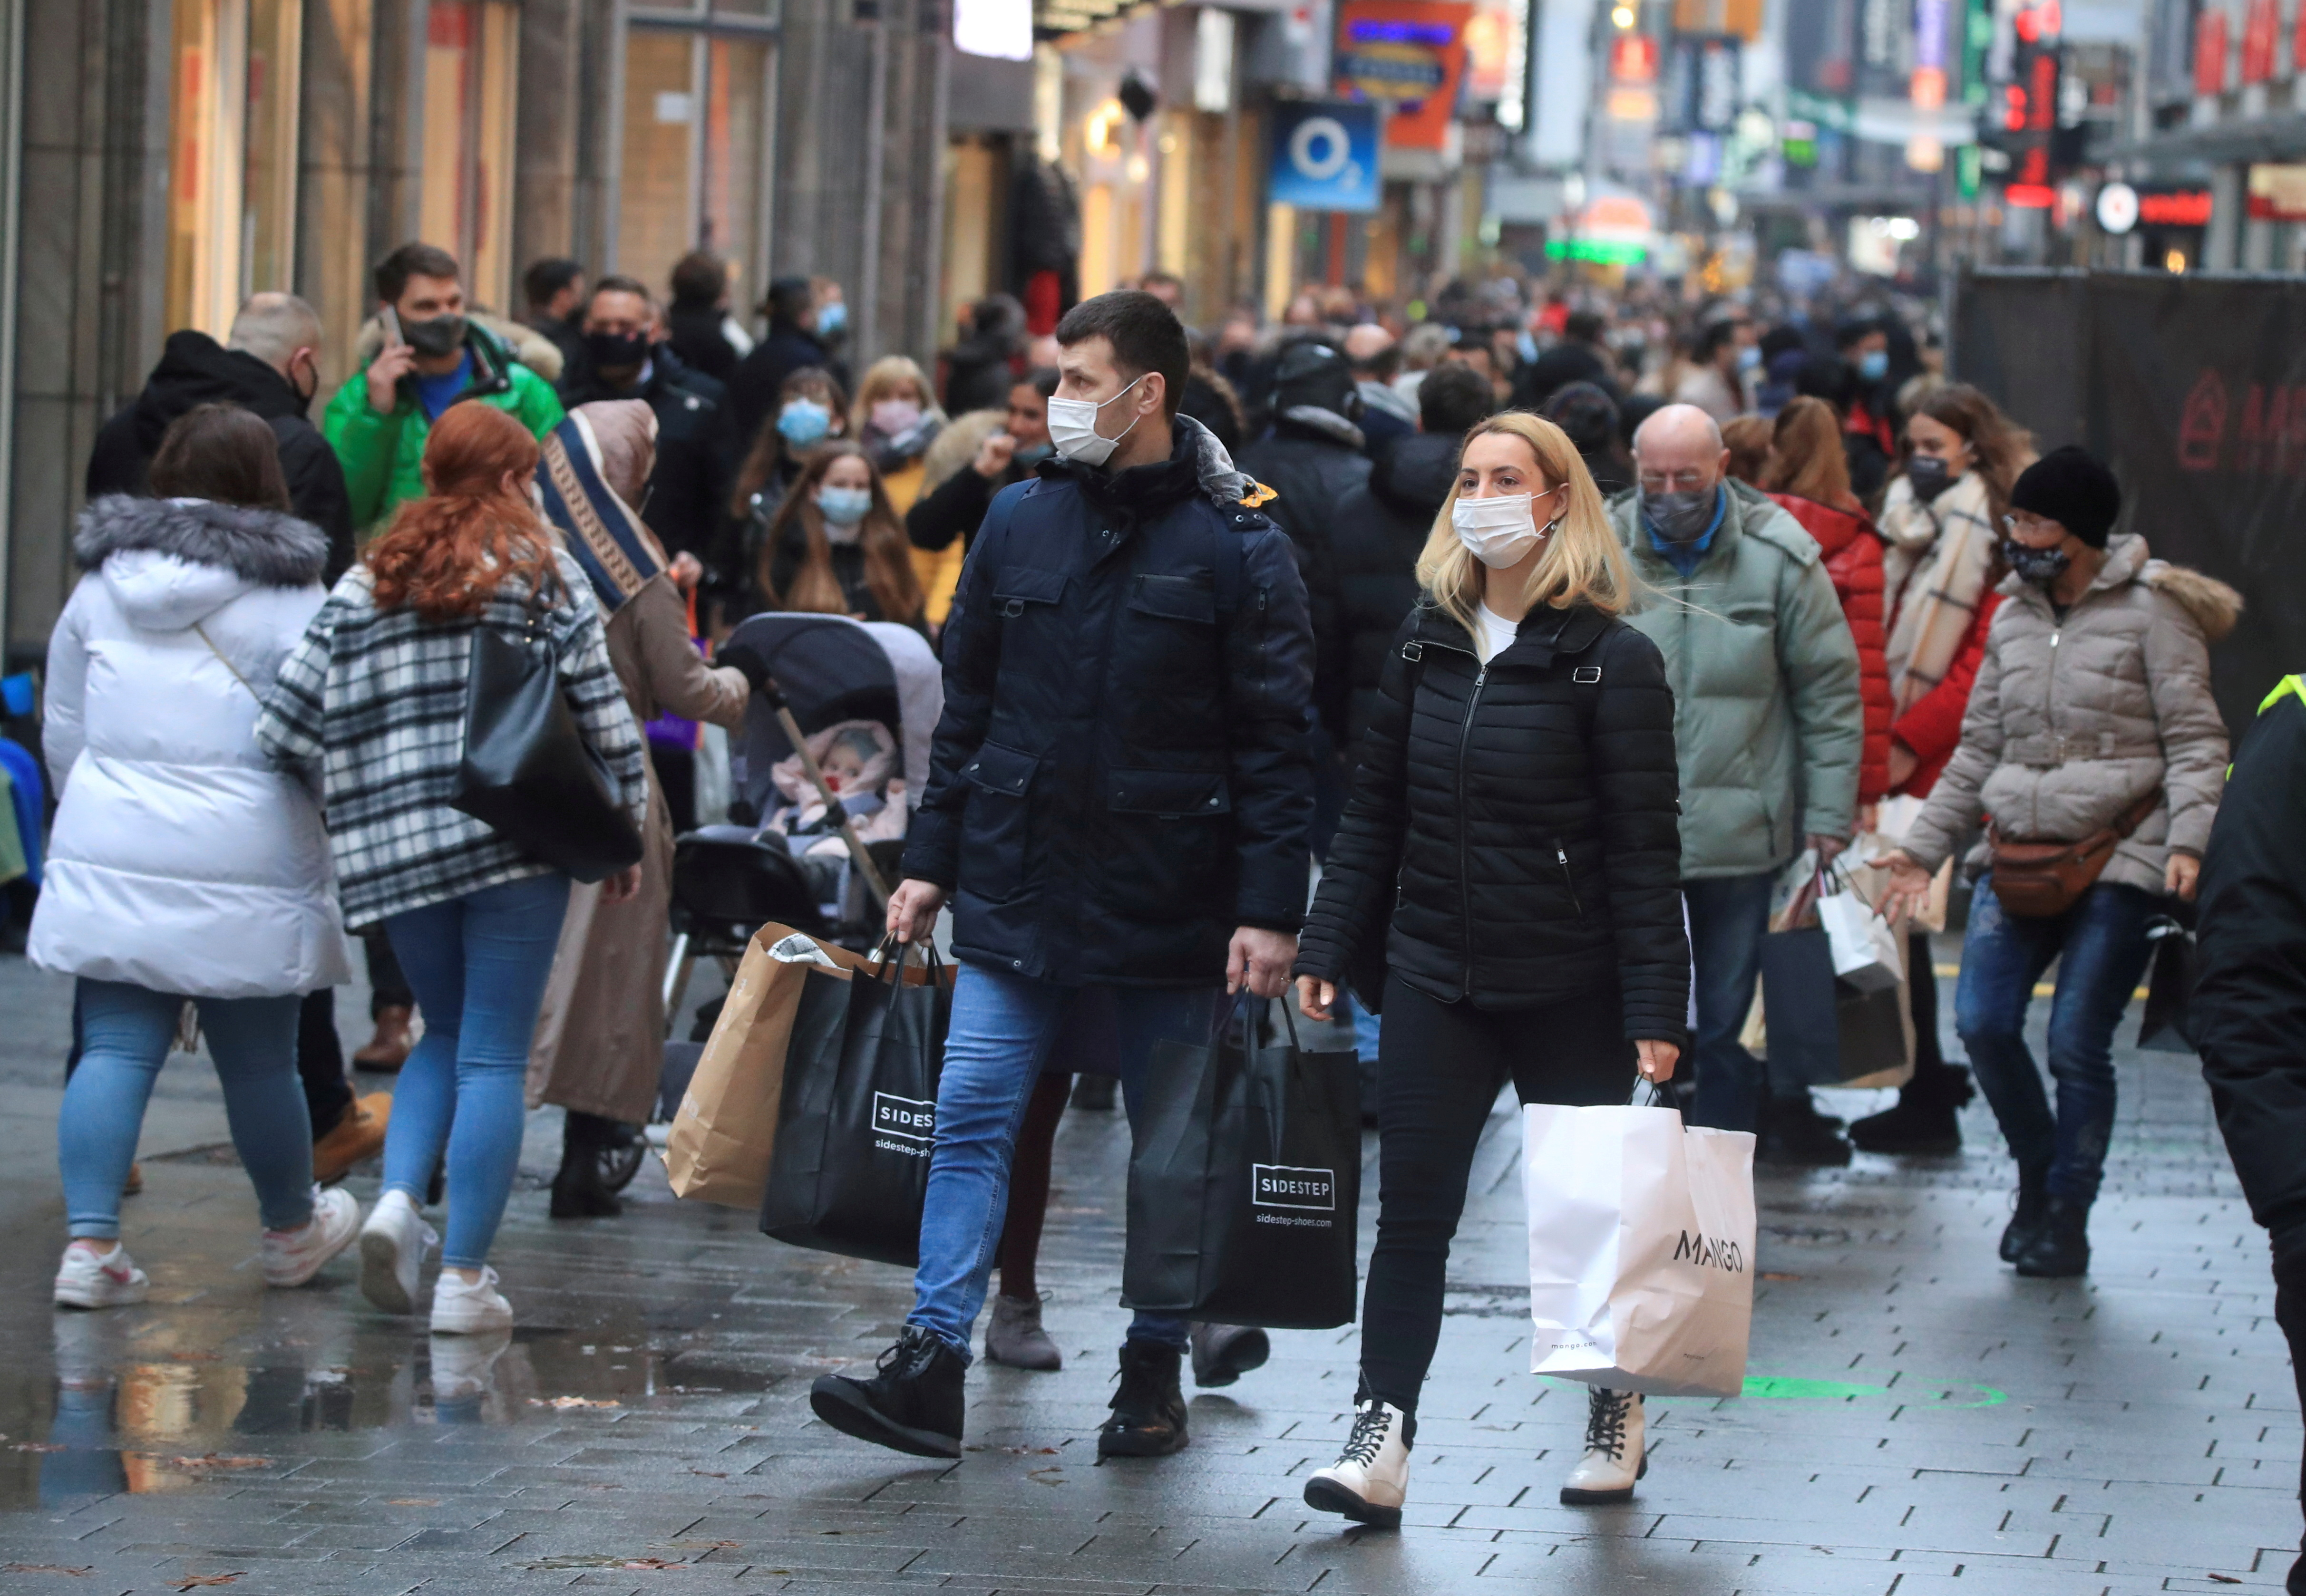 Shoppers wear mask and fill Cologne's main shopping street Hohe Strasse (High Street) in Cologne, Germany, 12, December, 2020.  REUTERS/Wolfgang Rattay/File Photo